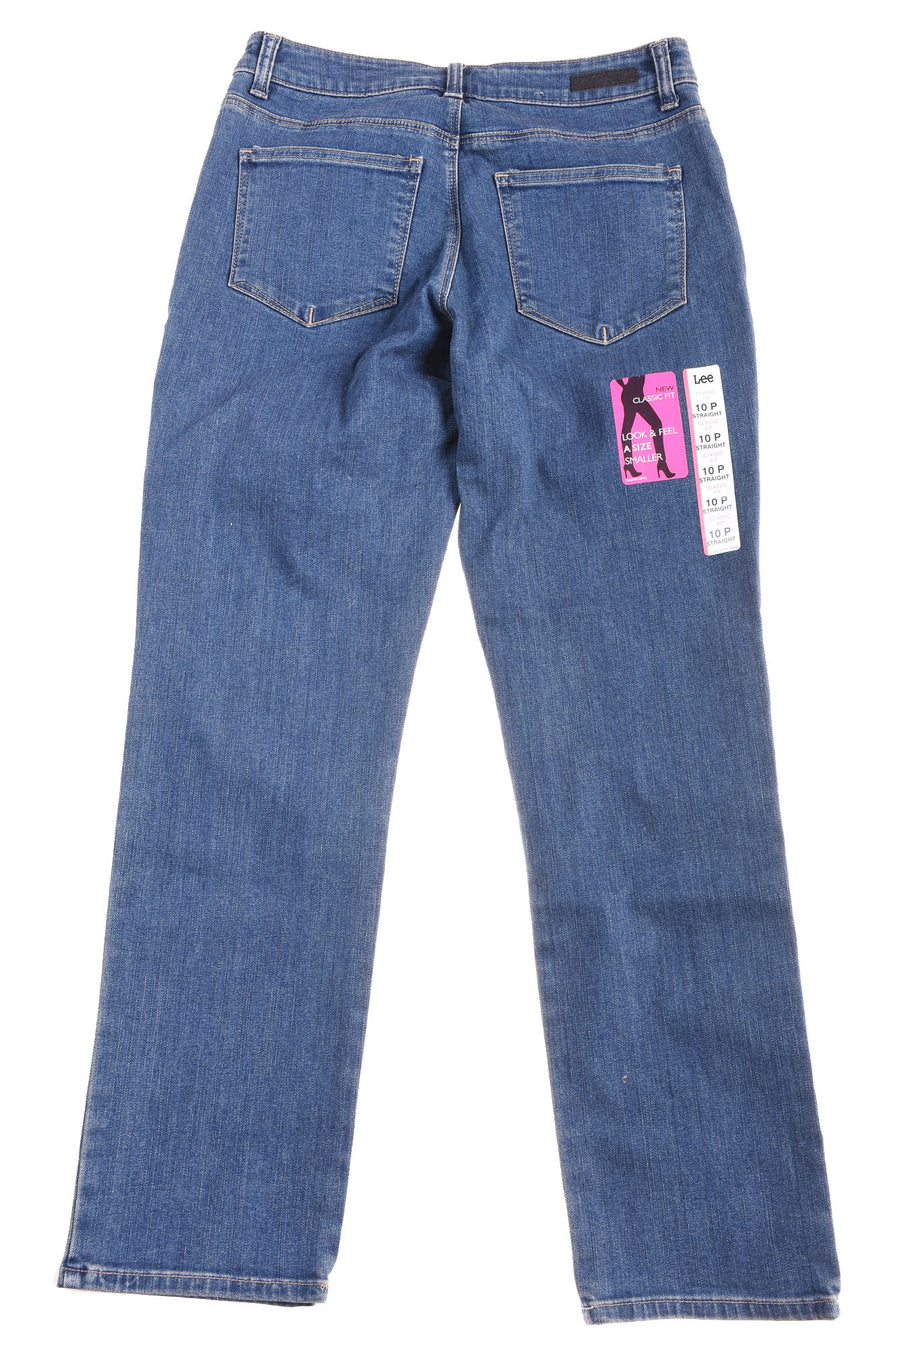 NEW Lee Women's Petite Jeans 10P Blue